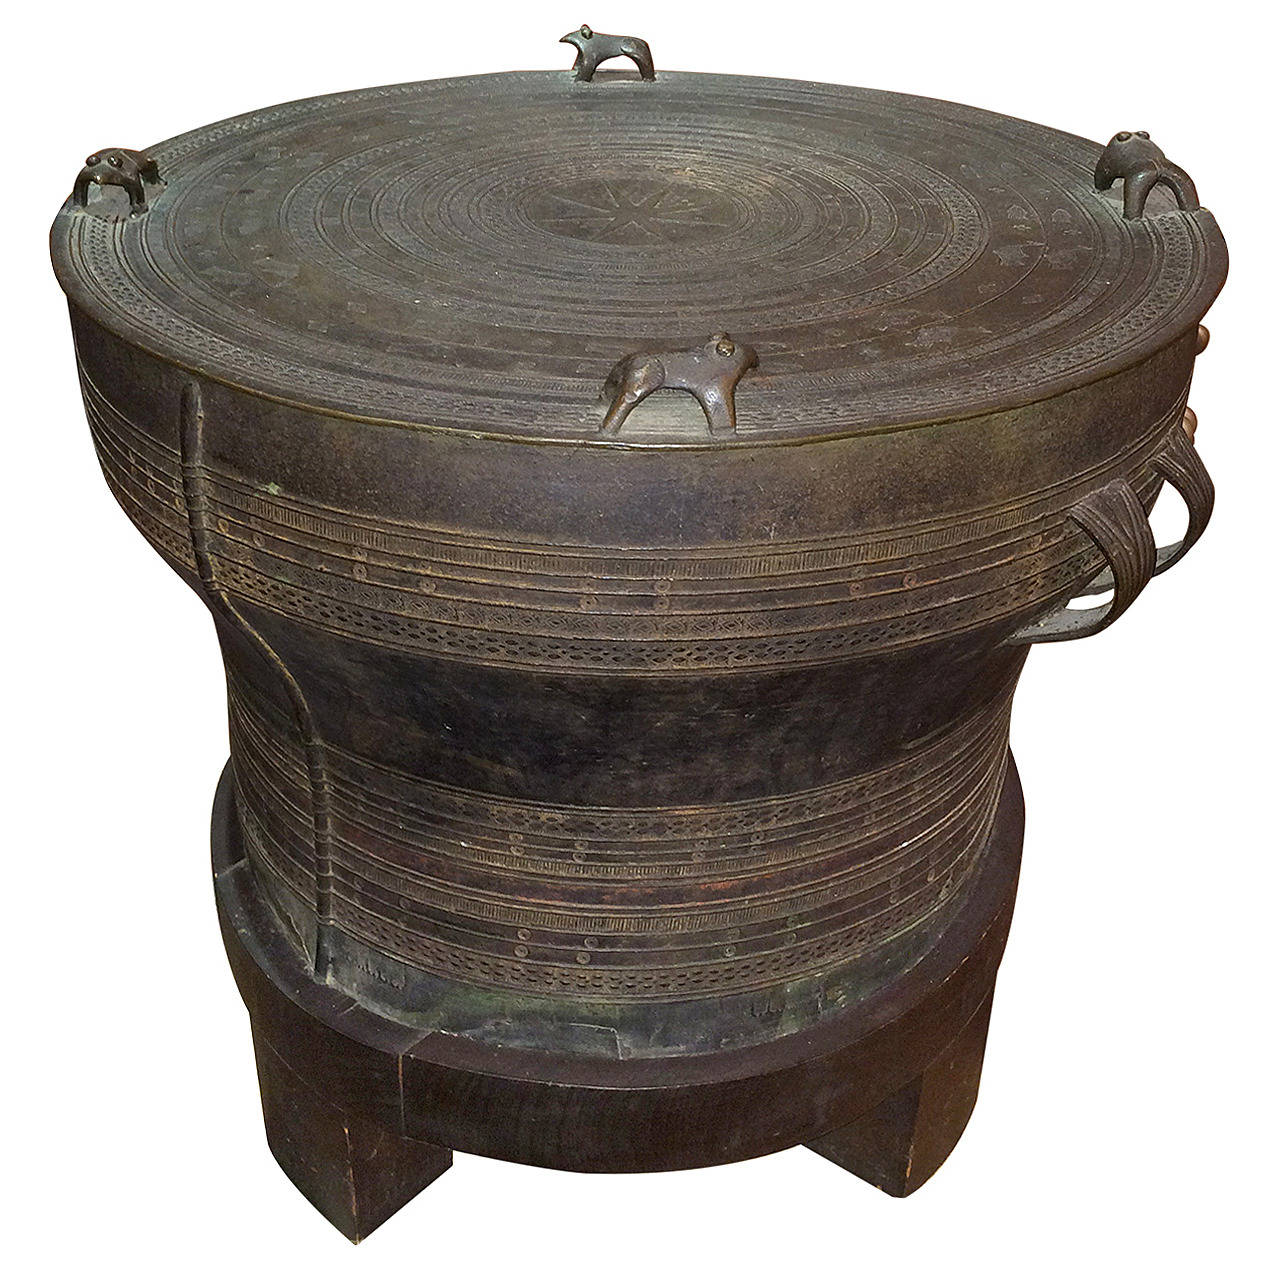 rain drum side table design ideas frog accent tables bronze furniture sets antique mouse wired designer placemats and napkins hobby lobby best lamps kitchen chairs with arms